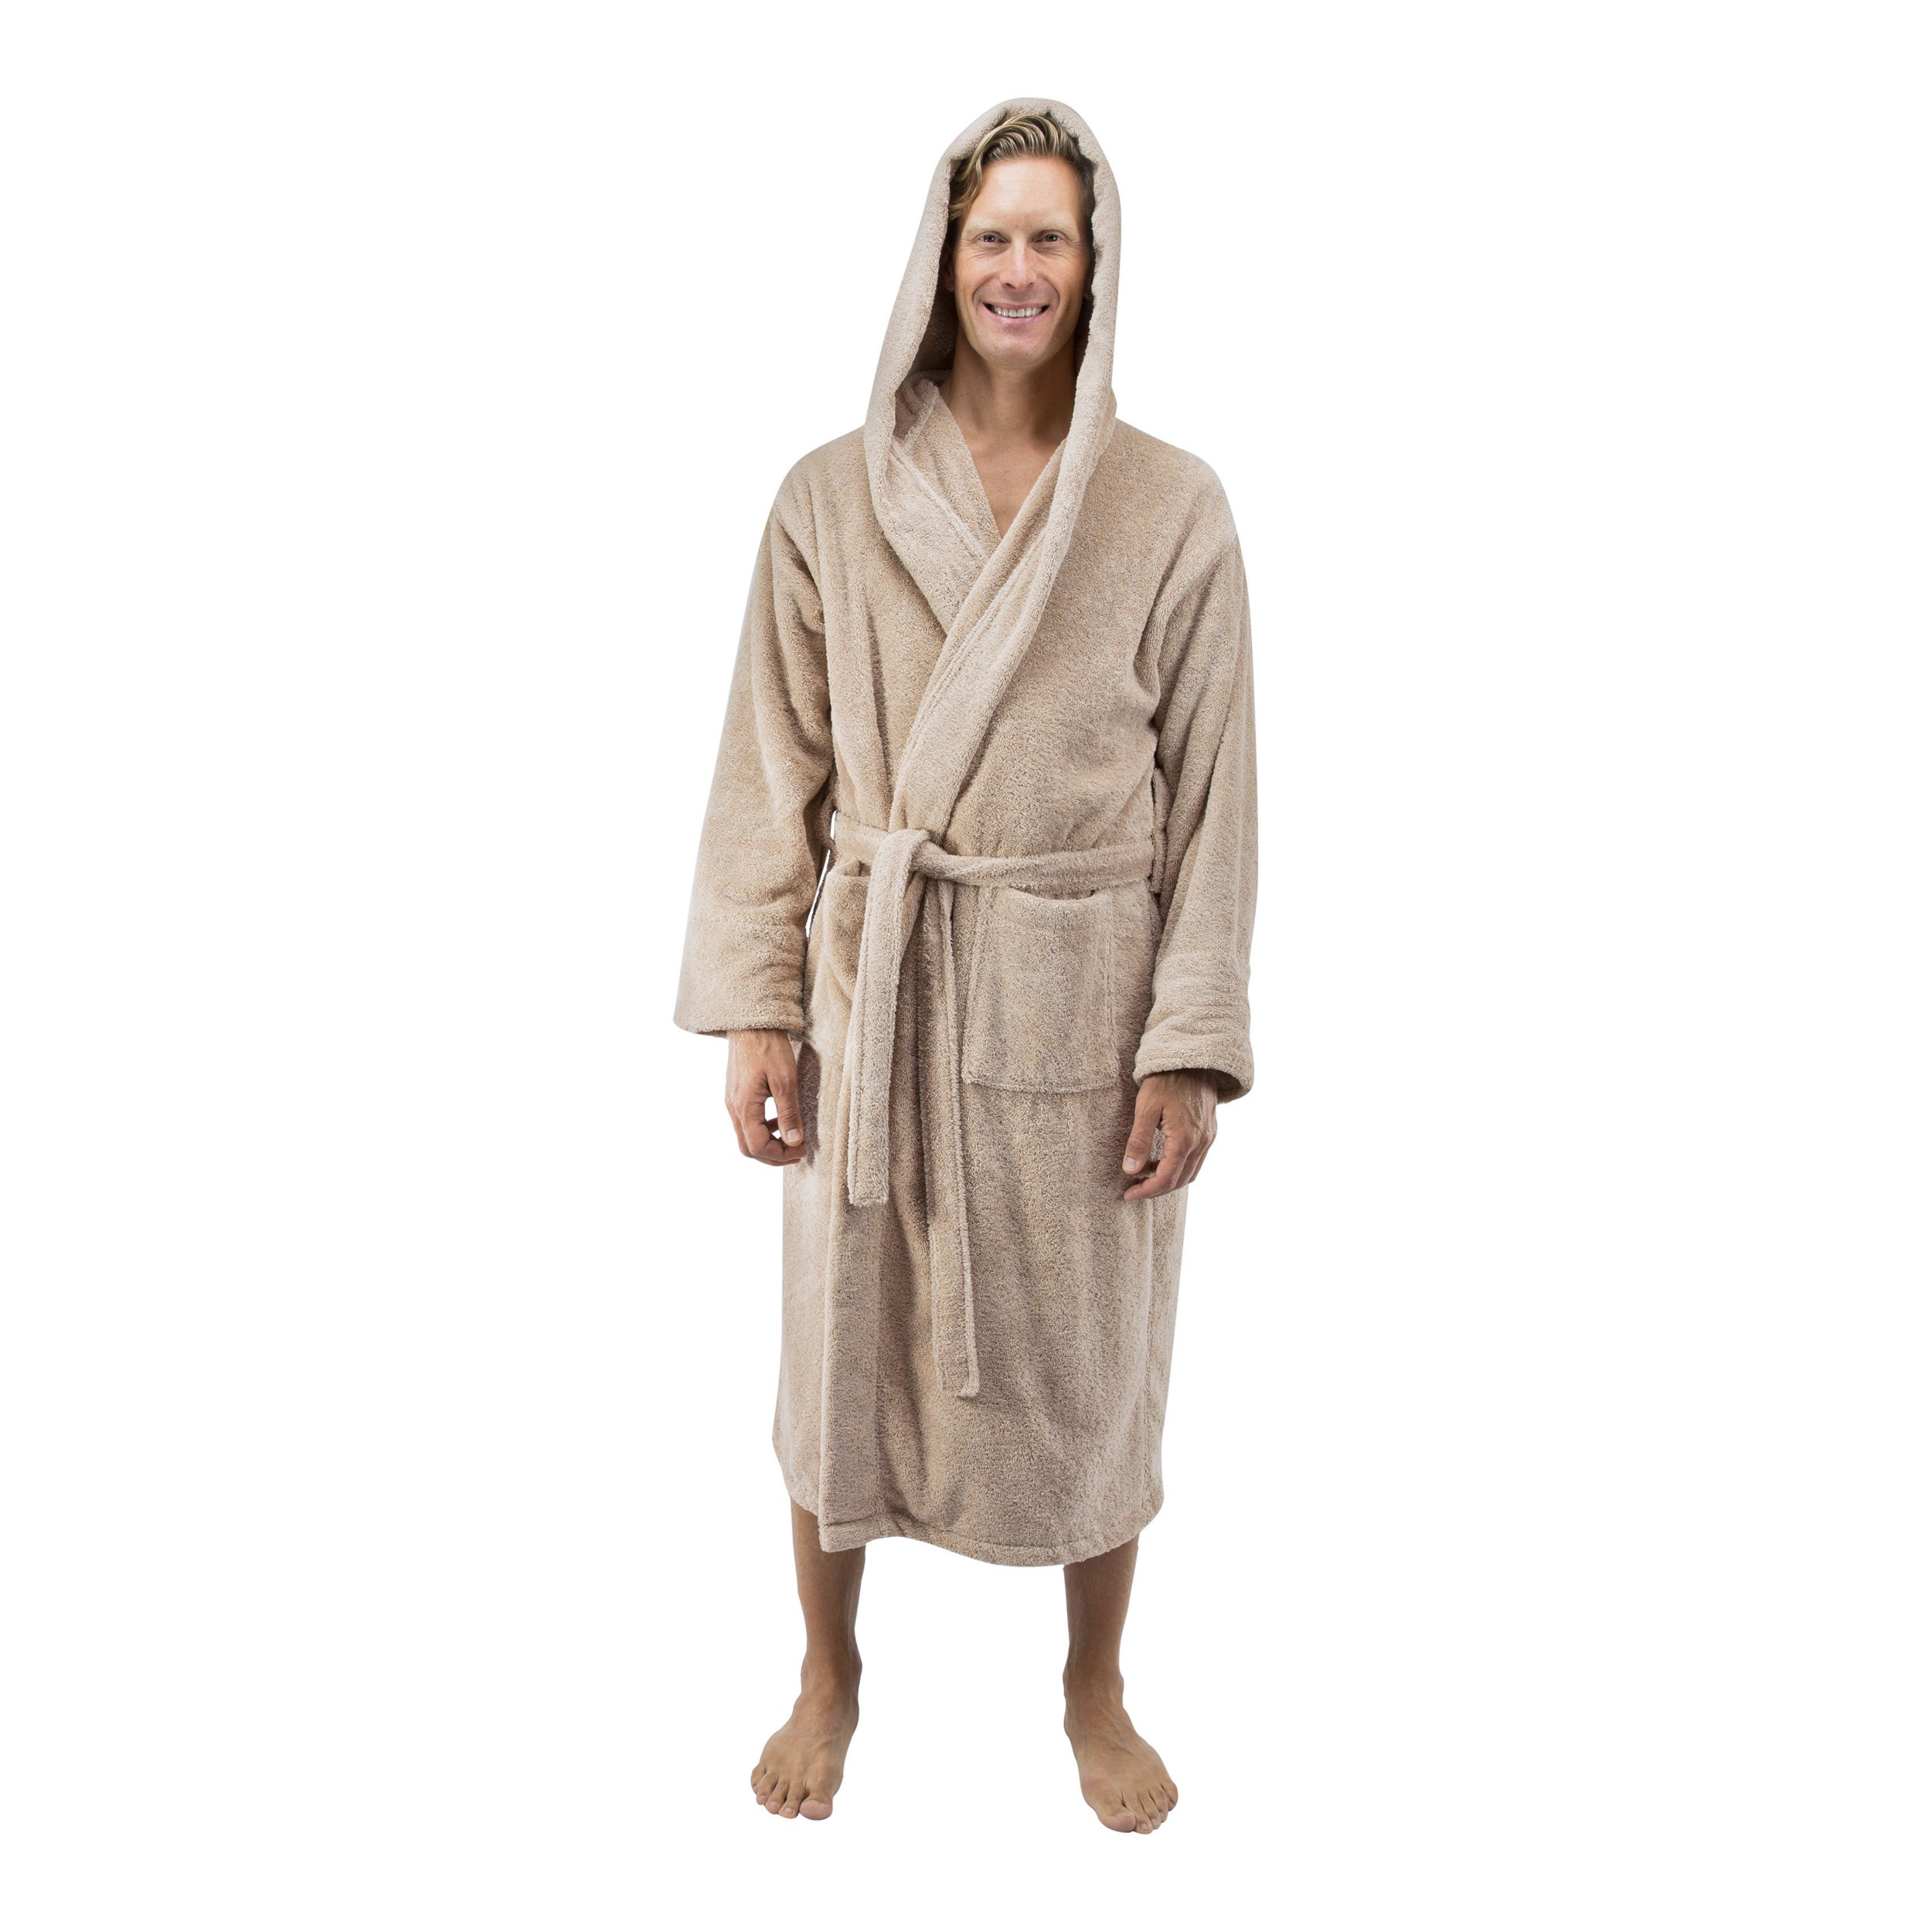 Comfy Robes Personalized Men's Deluxe 20 oz. Turkish Cotton Hooded Bathrobe, L/XL (OSFM) Tall Beige